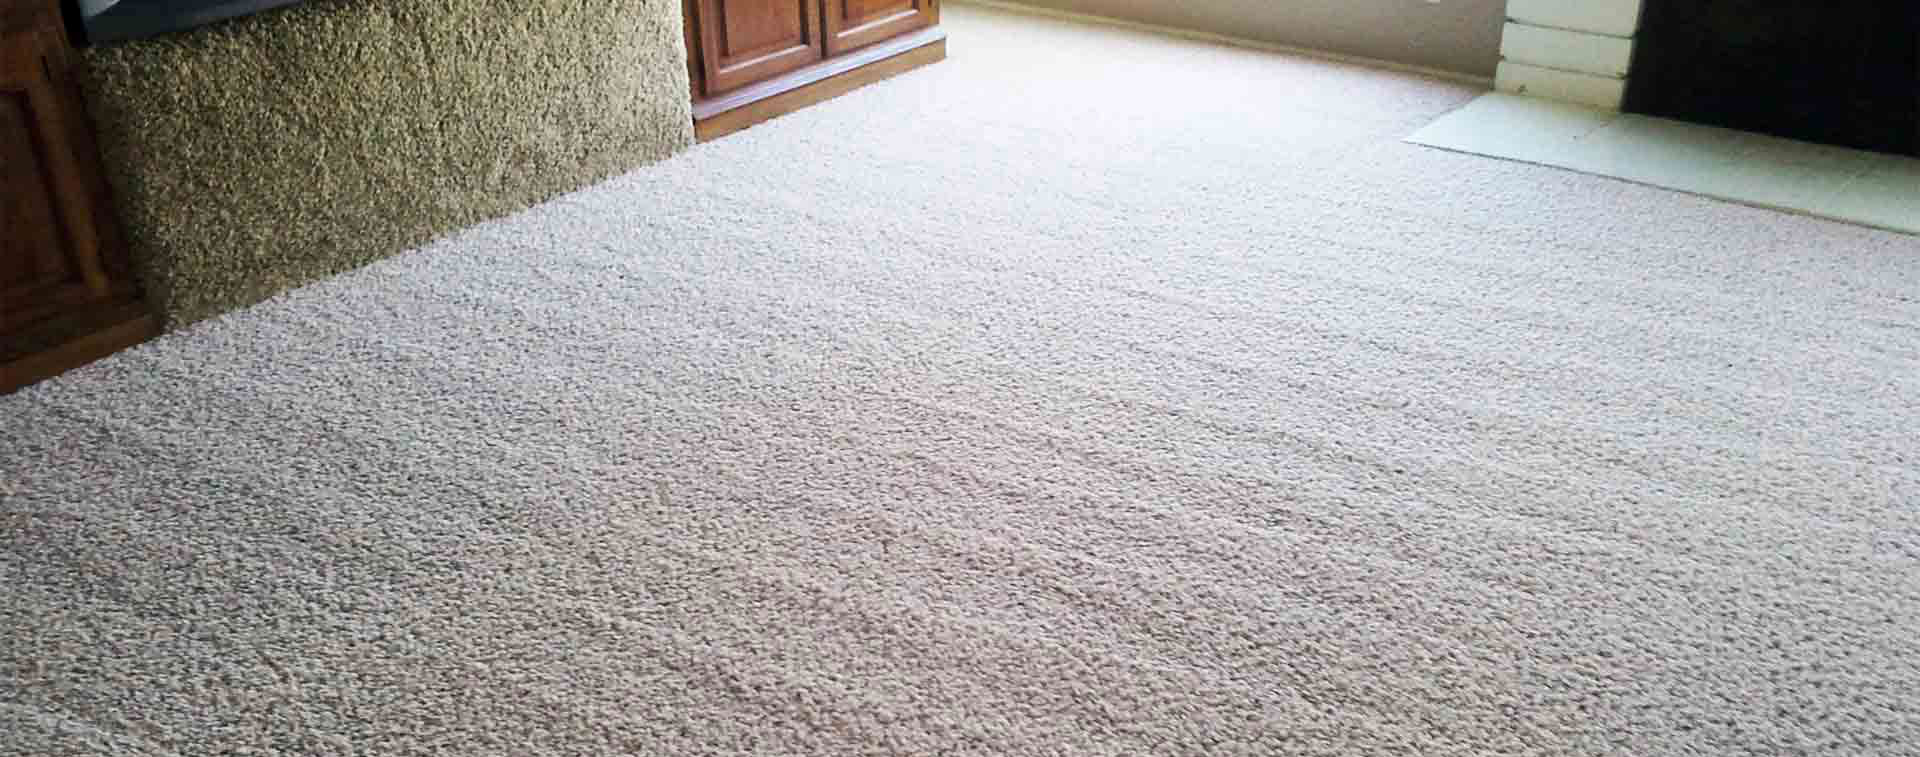 Carpet Cleaning Dural